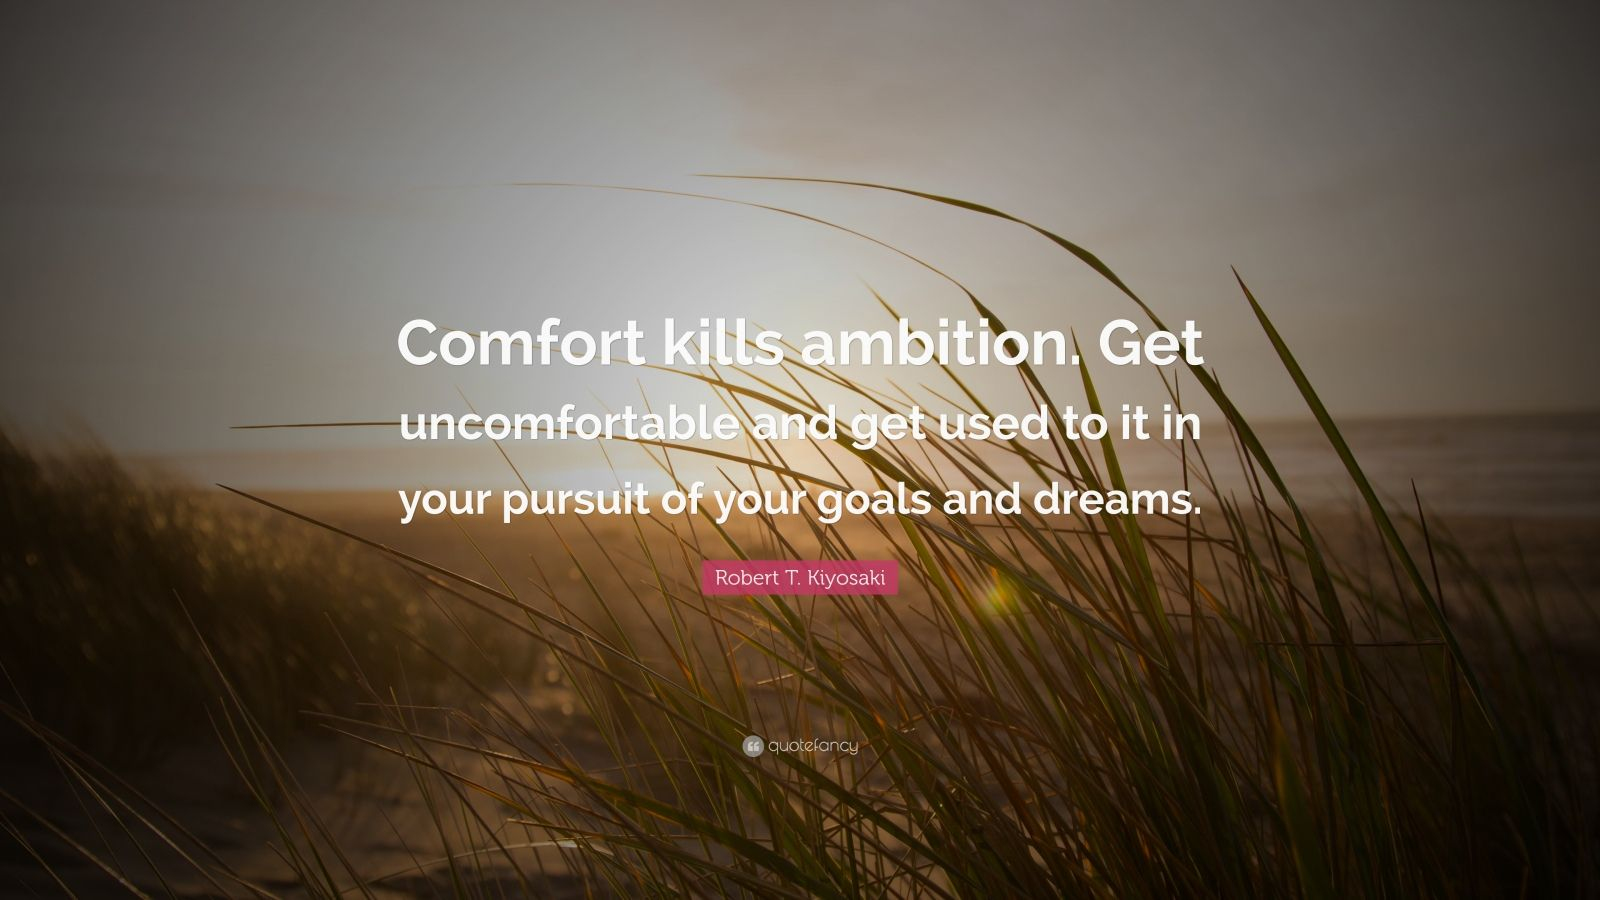 Business Success Quotes Wallpaper Ambition Quotes 40 Wallpapers Quotefancy